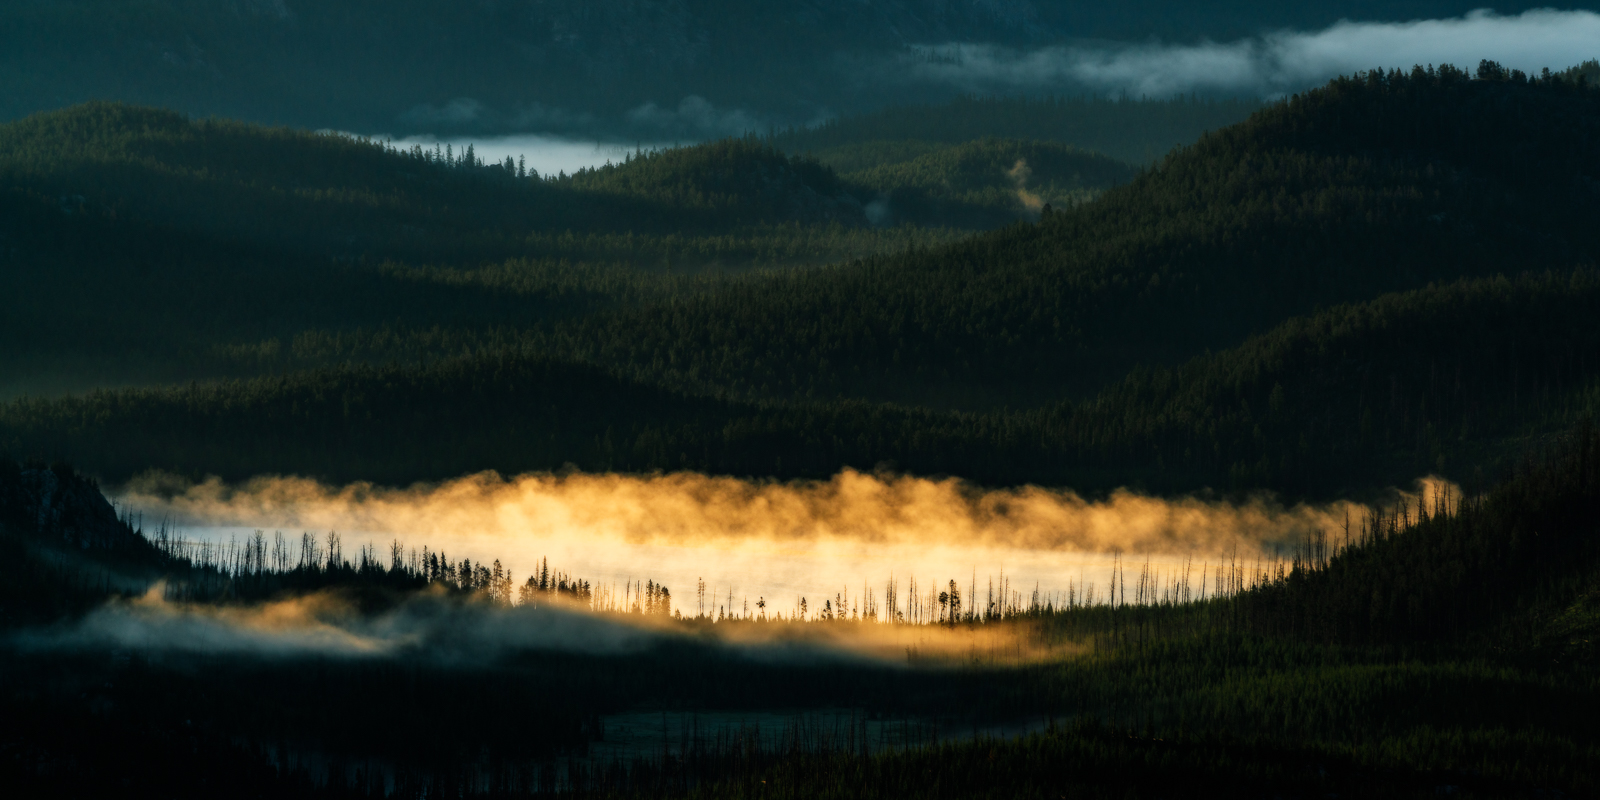 After a night of crazy thunderstorms near Cooke City, Montana, fog developed over a small lake at sunrise, making for a very...